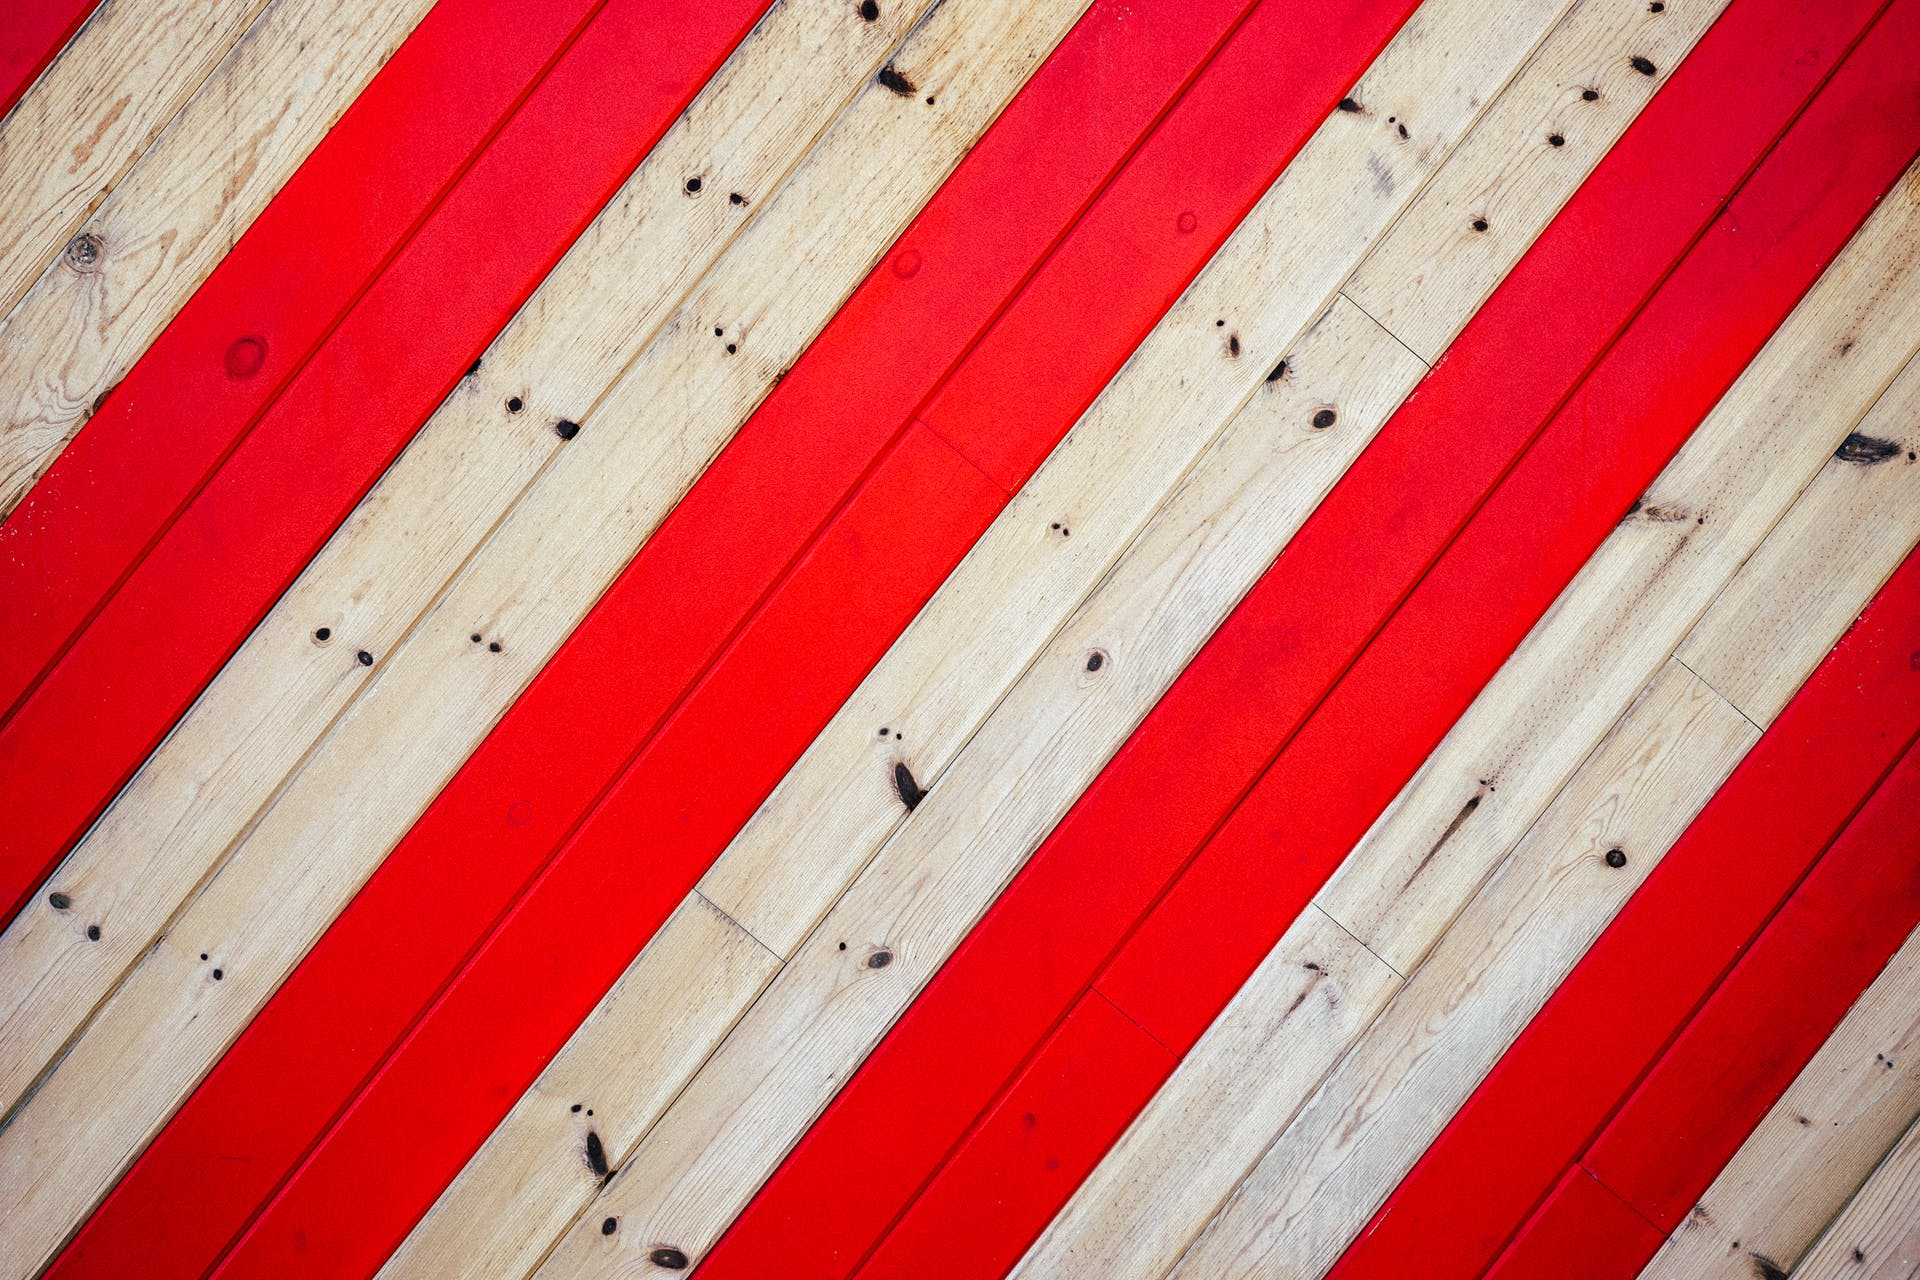 Brown Wooden Board With Red Lines